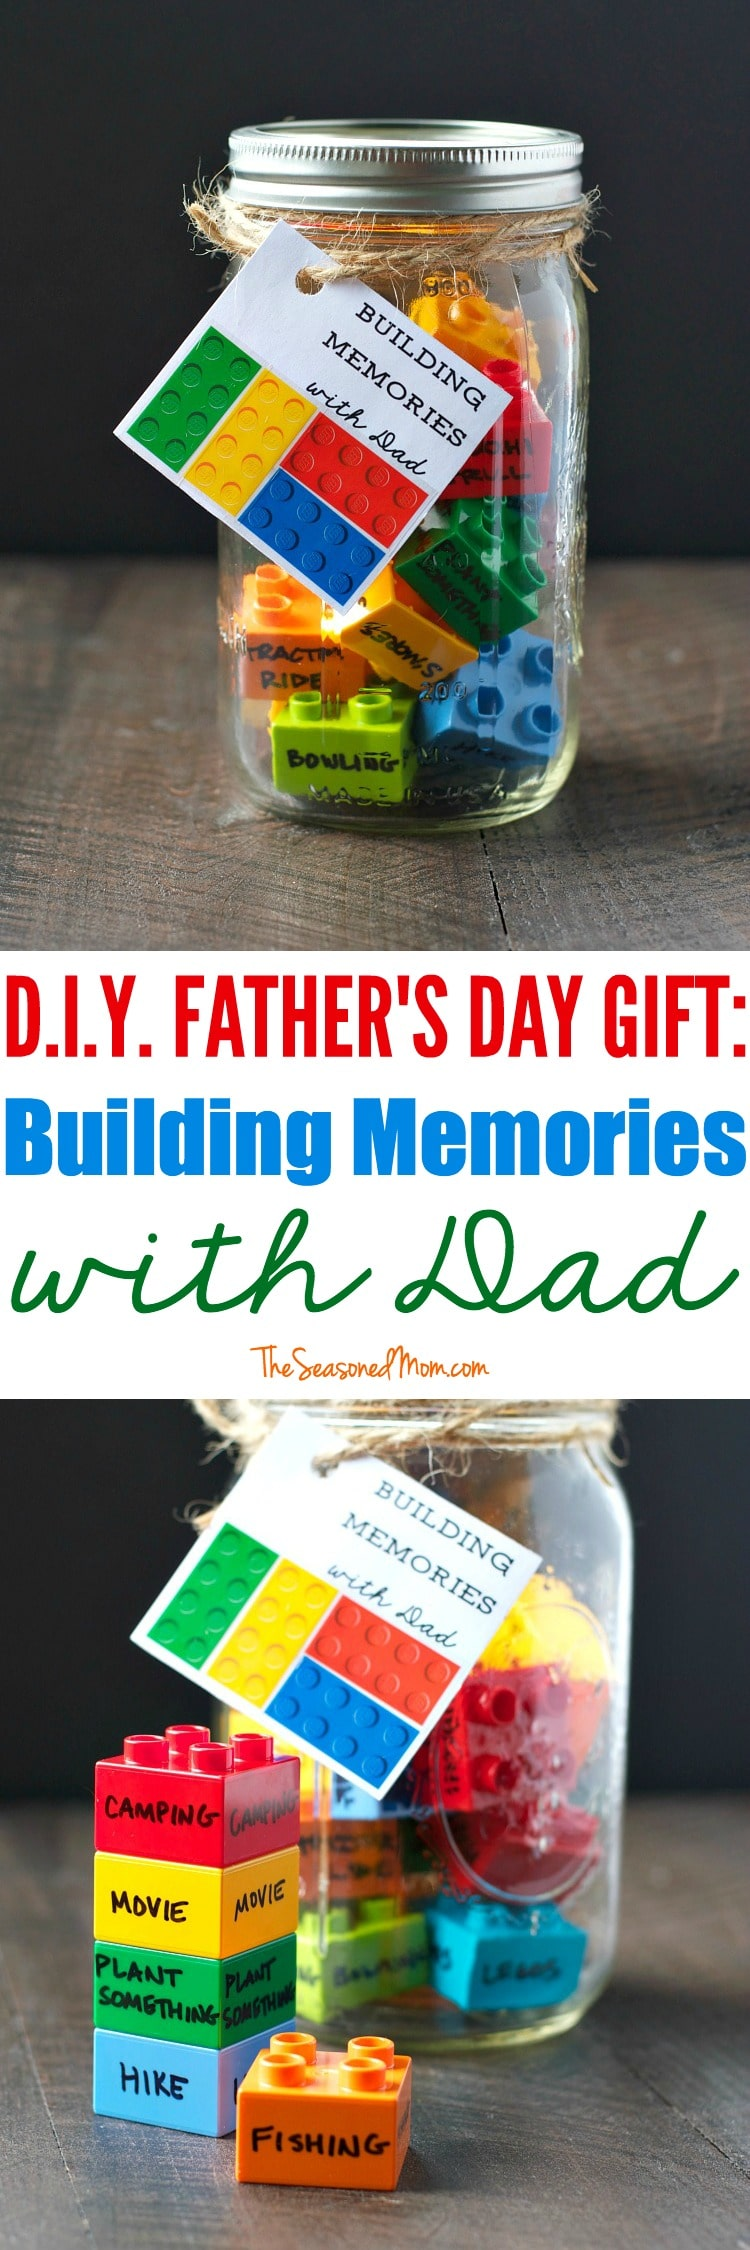 Building Memories with Dad Legos - I don't if anything warms the heart quite like a homemade gift from your kiddo! Father's Day is no exception - here are 25 homemade Father's Day gifts from kids  - and ones that Dad can actually use!  Keep reading to check them out!